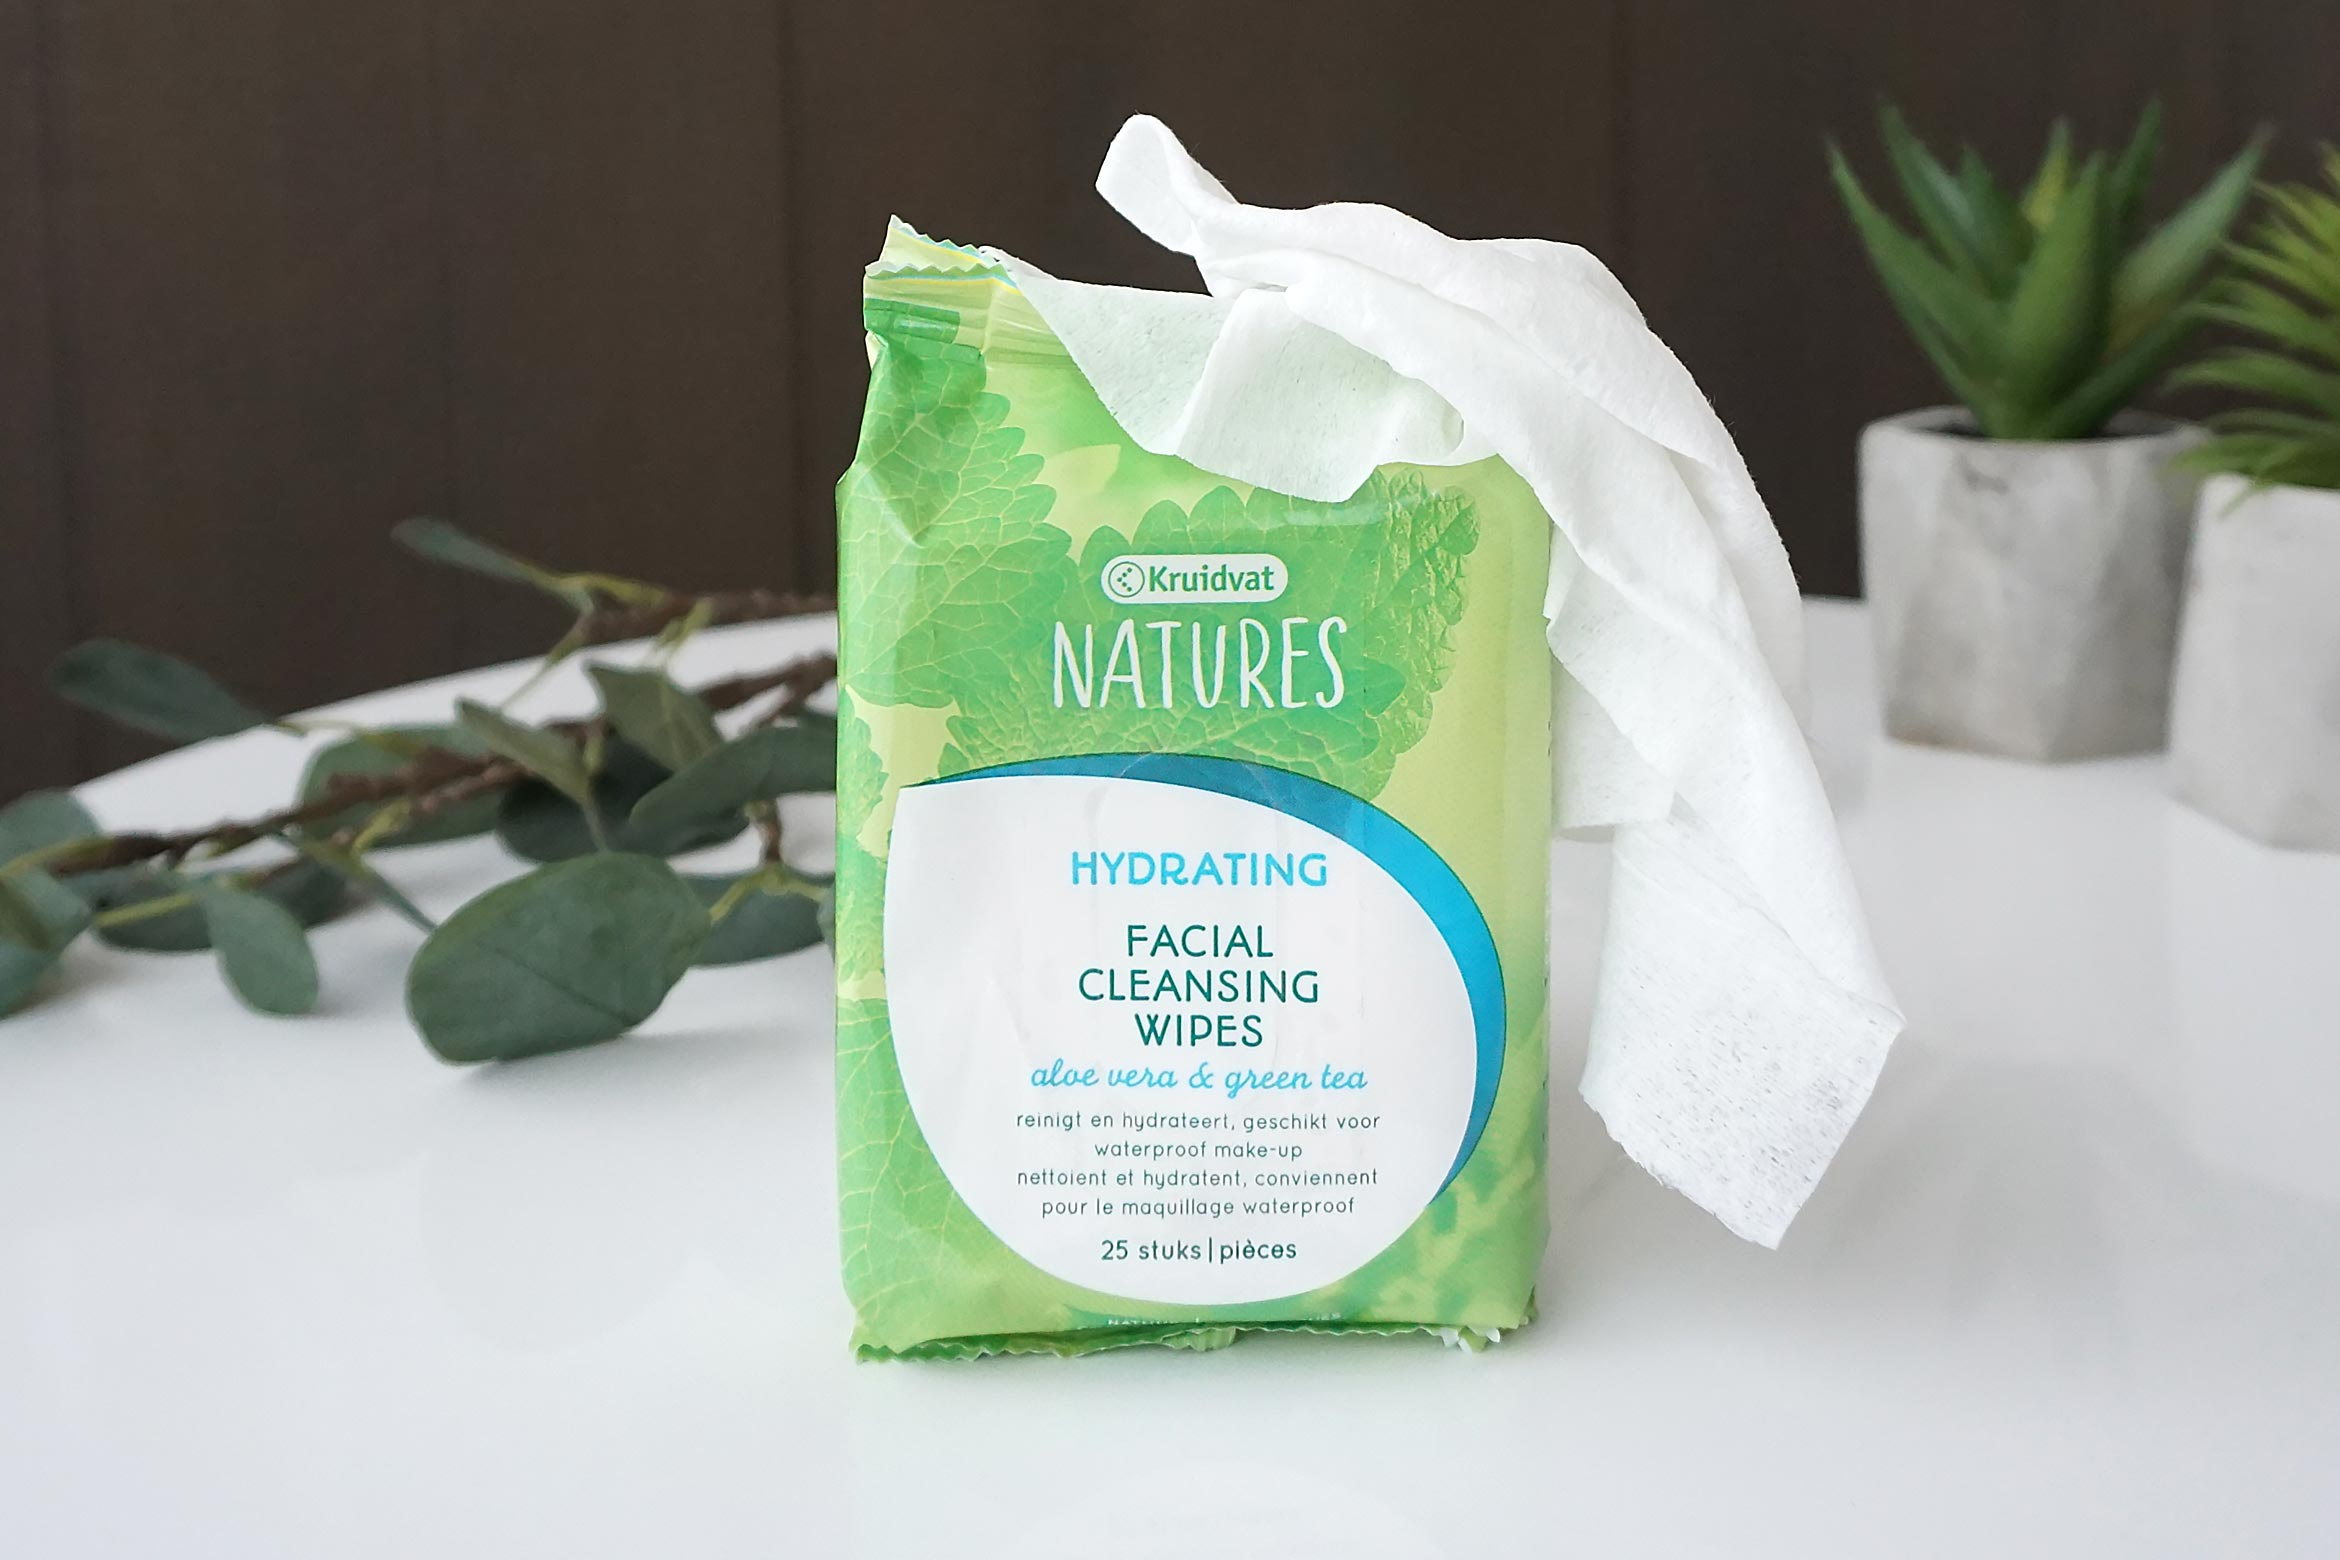 Kruidvat-Natures-Hydrating-Facial-Cleansing-Wipes-review